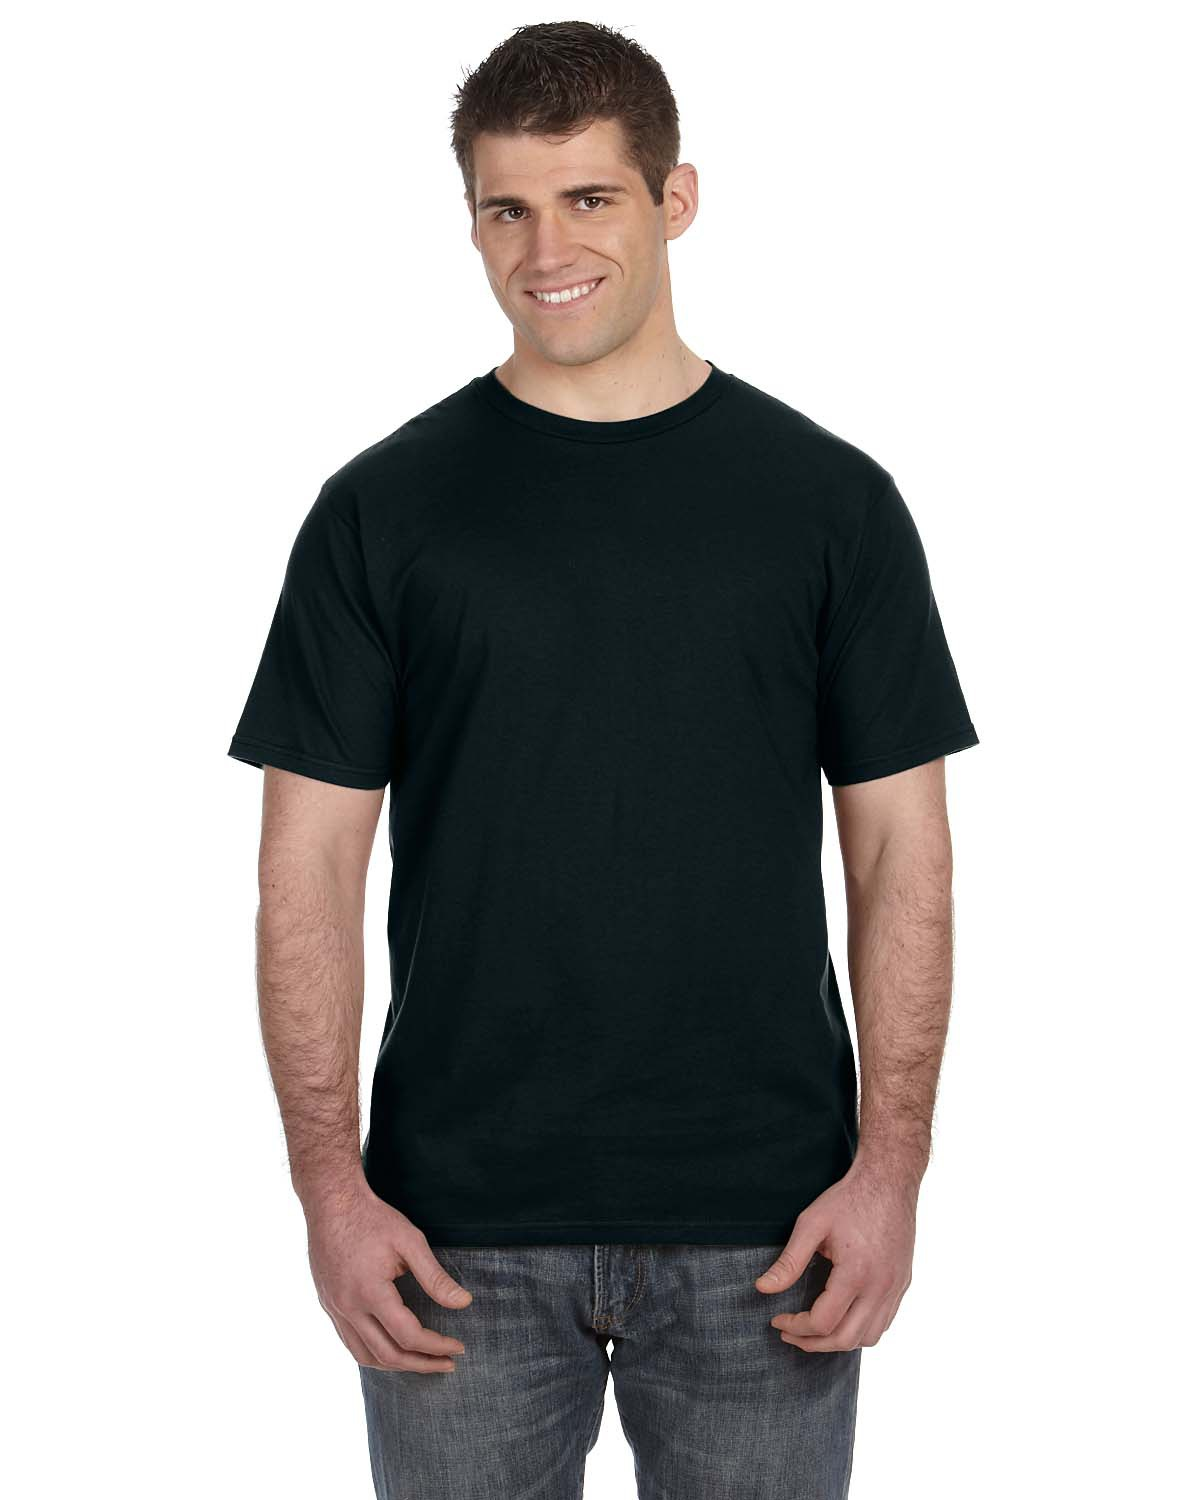 Anvil 980 - 100% Cotton T-Shirt